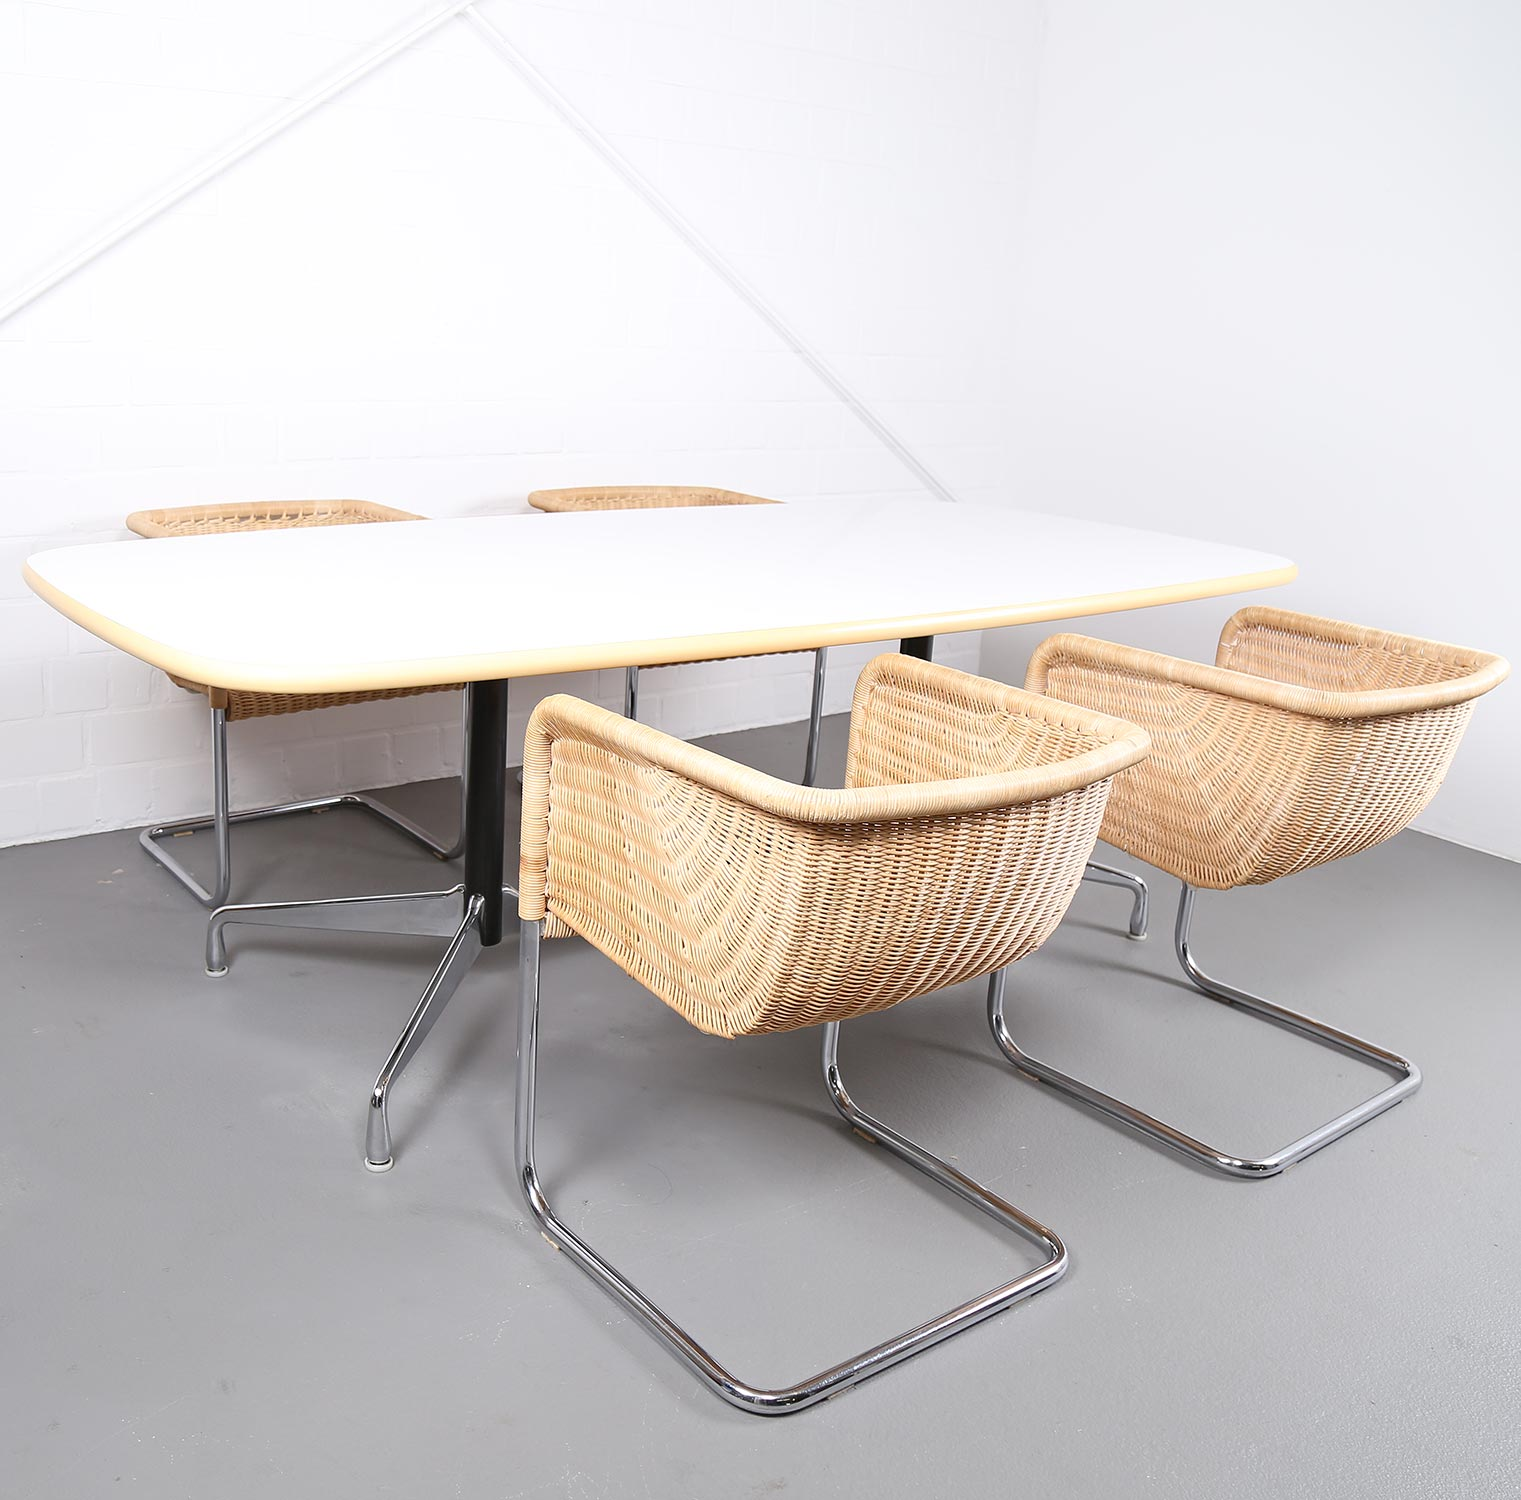 Eames Tisch Segmented Table Konferenztisch Esstisch Ray Charles Eames For